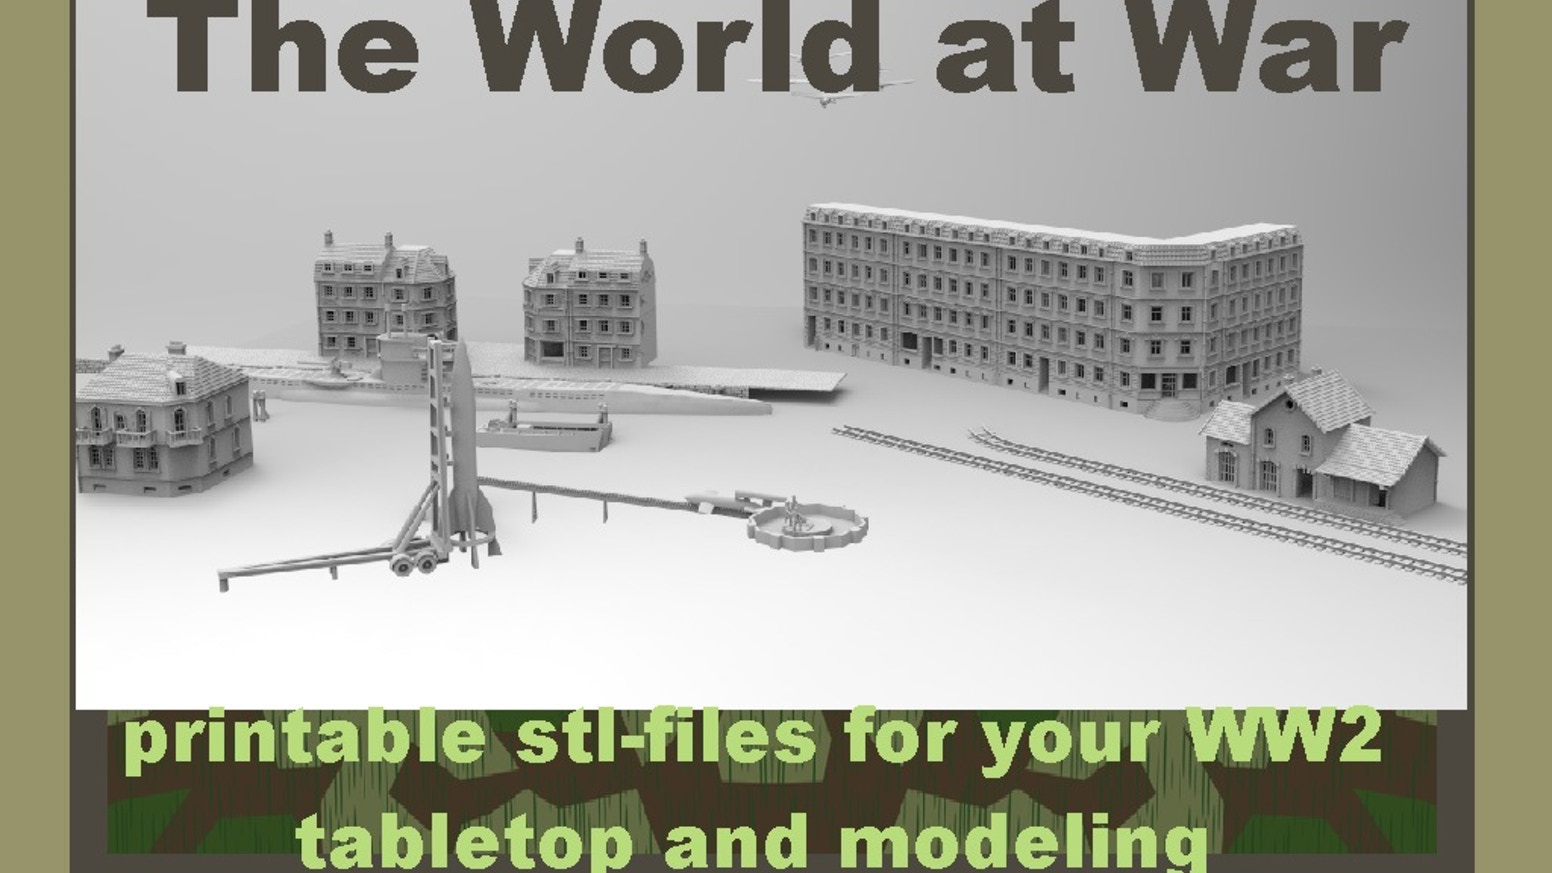 WW2 printable terrain for tabletop and modeling by 3D-Print-Terrain